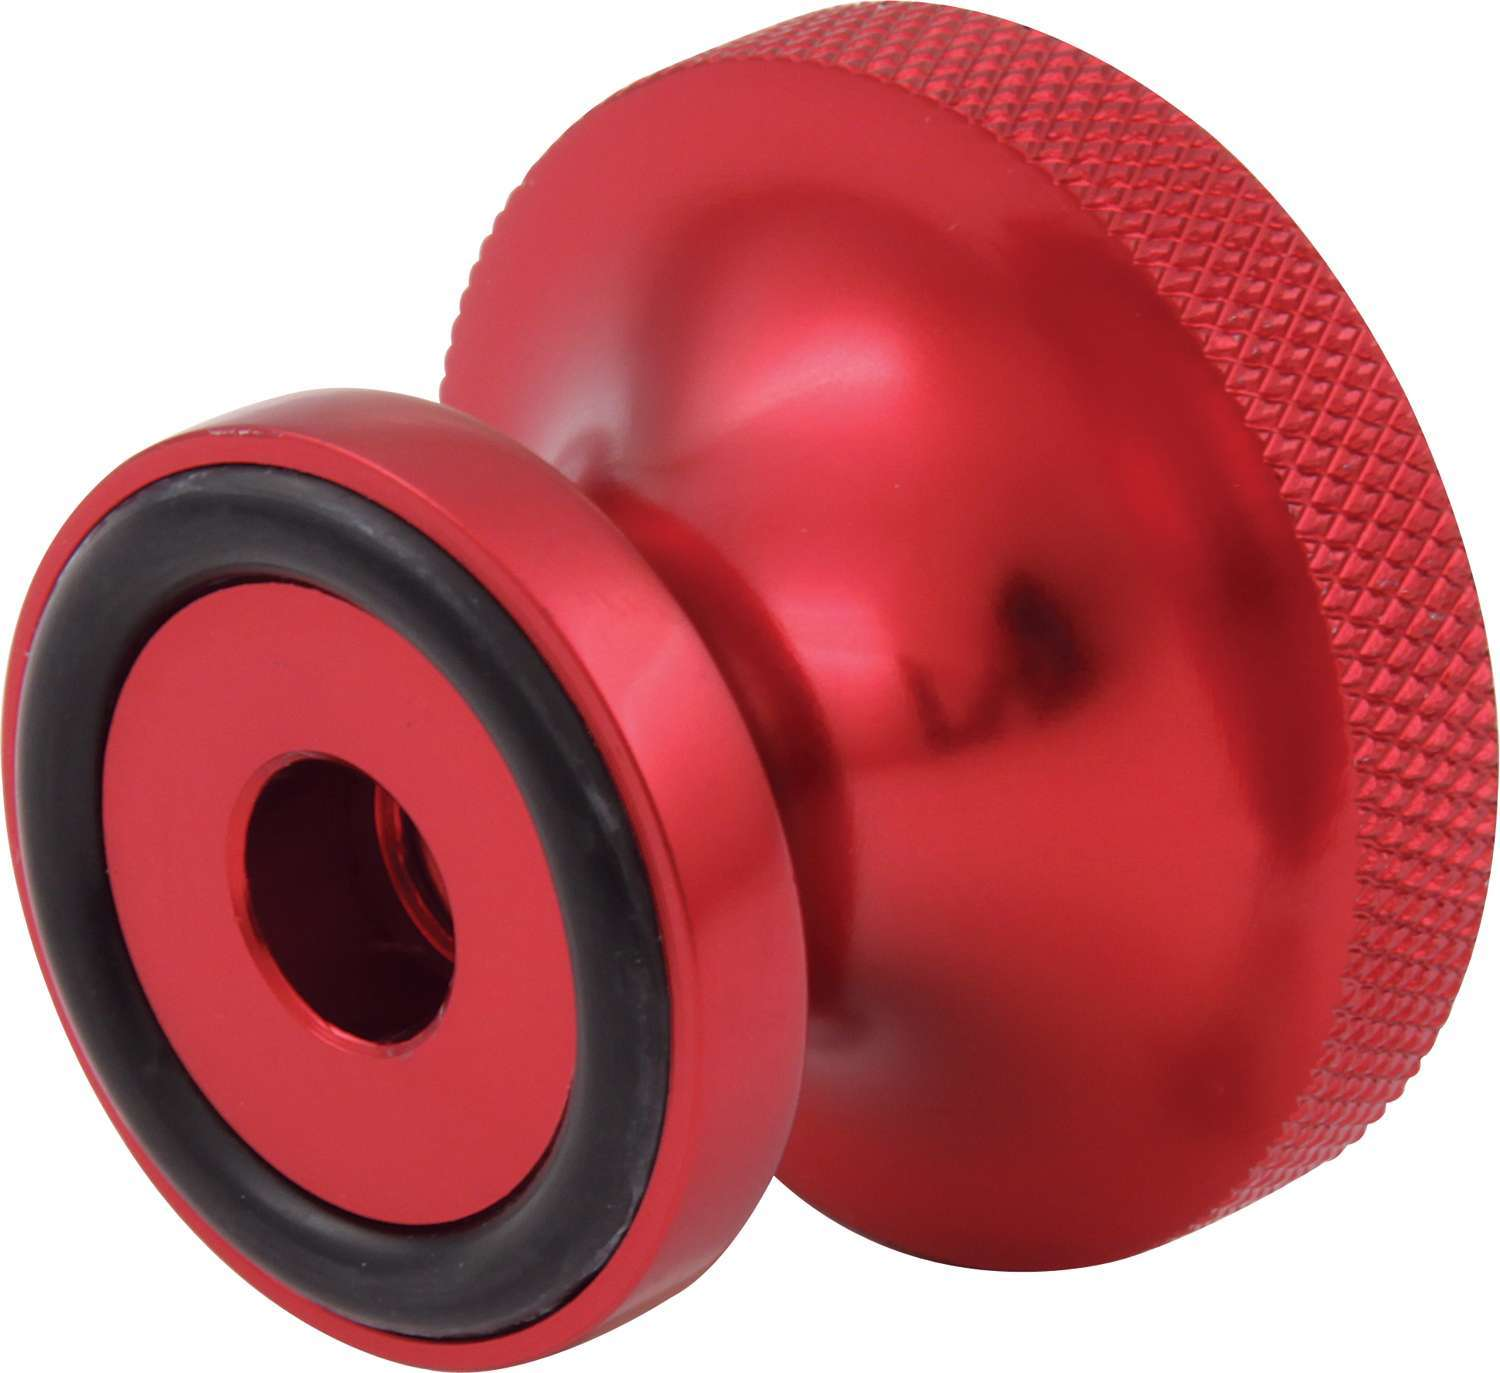 QuickCar 64-148 Air Cleaner Nut, Thumb Screw, 5/16-18 in Thread, O-Ring, Aluminum, Red Anodized, Each